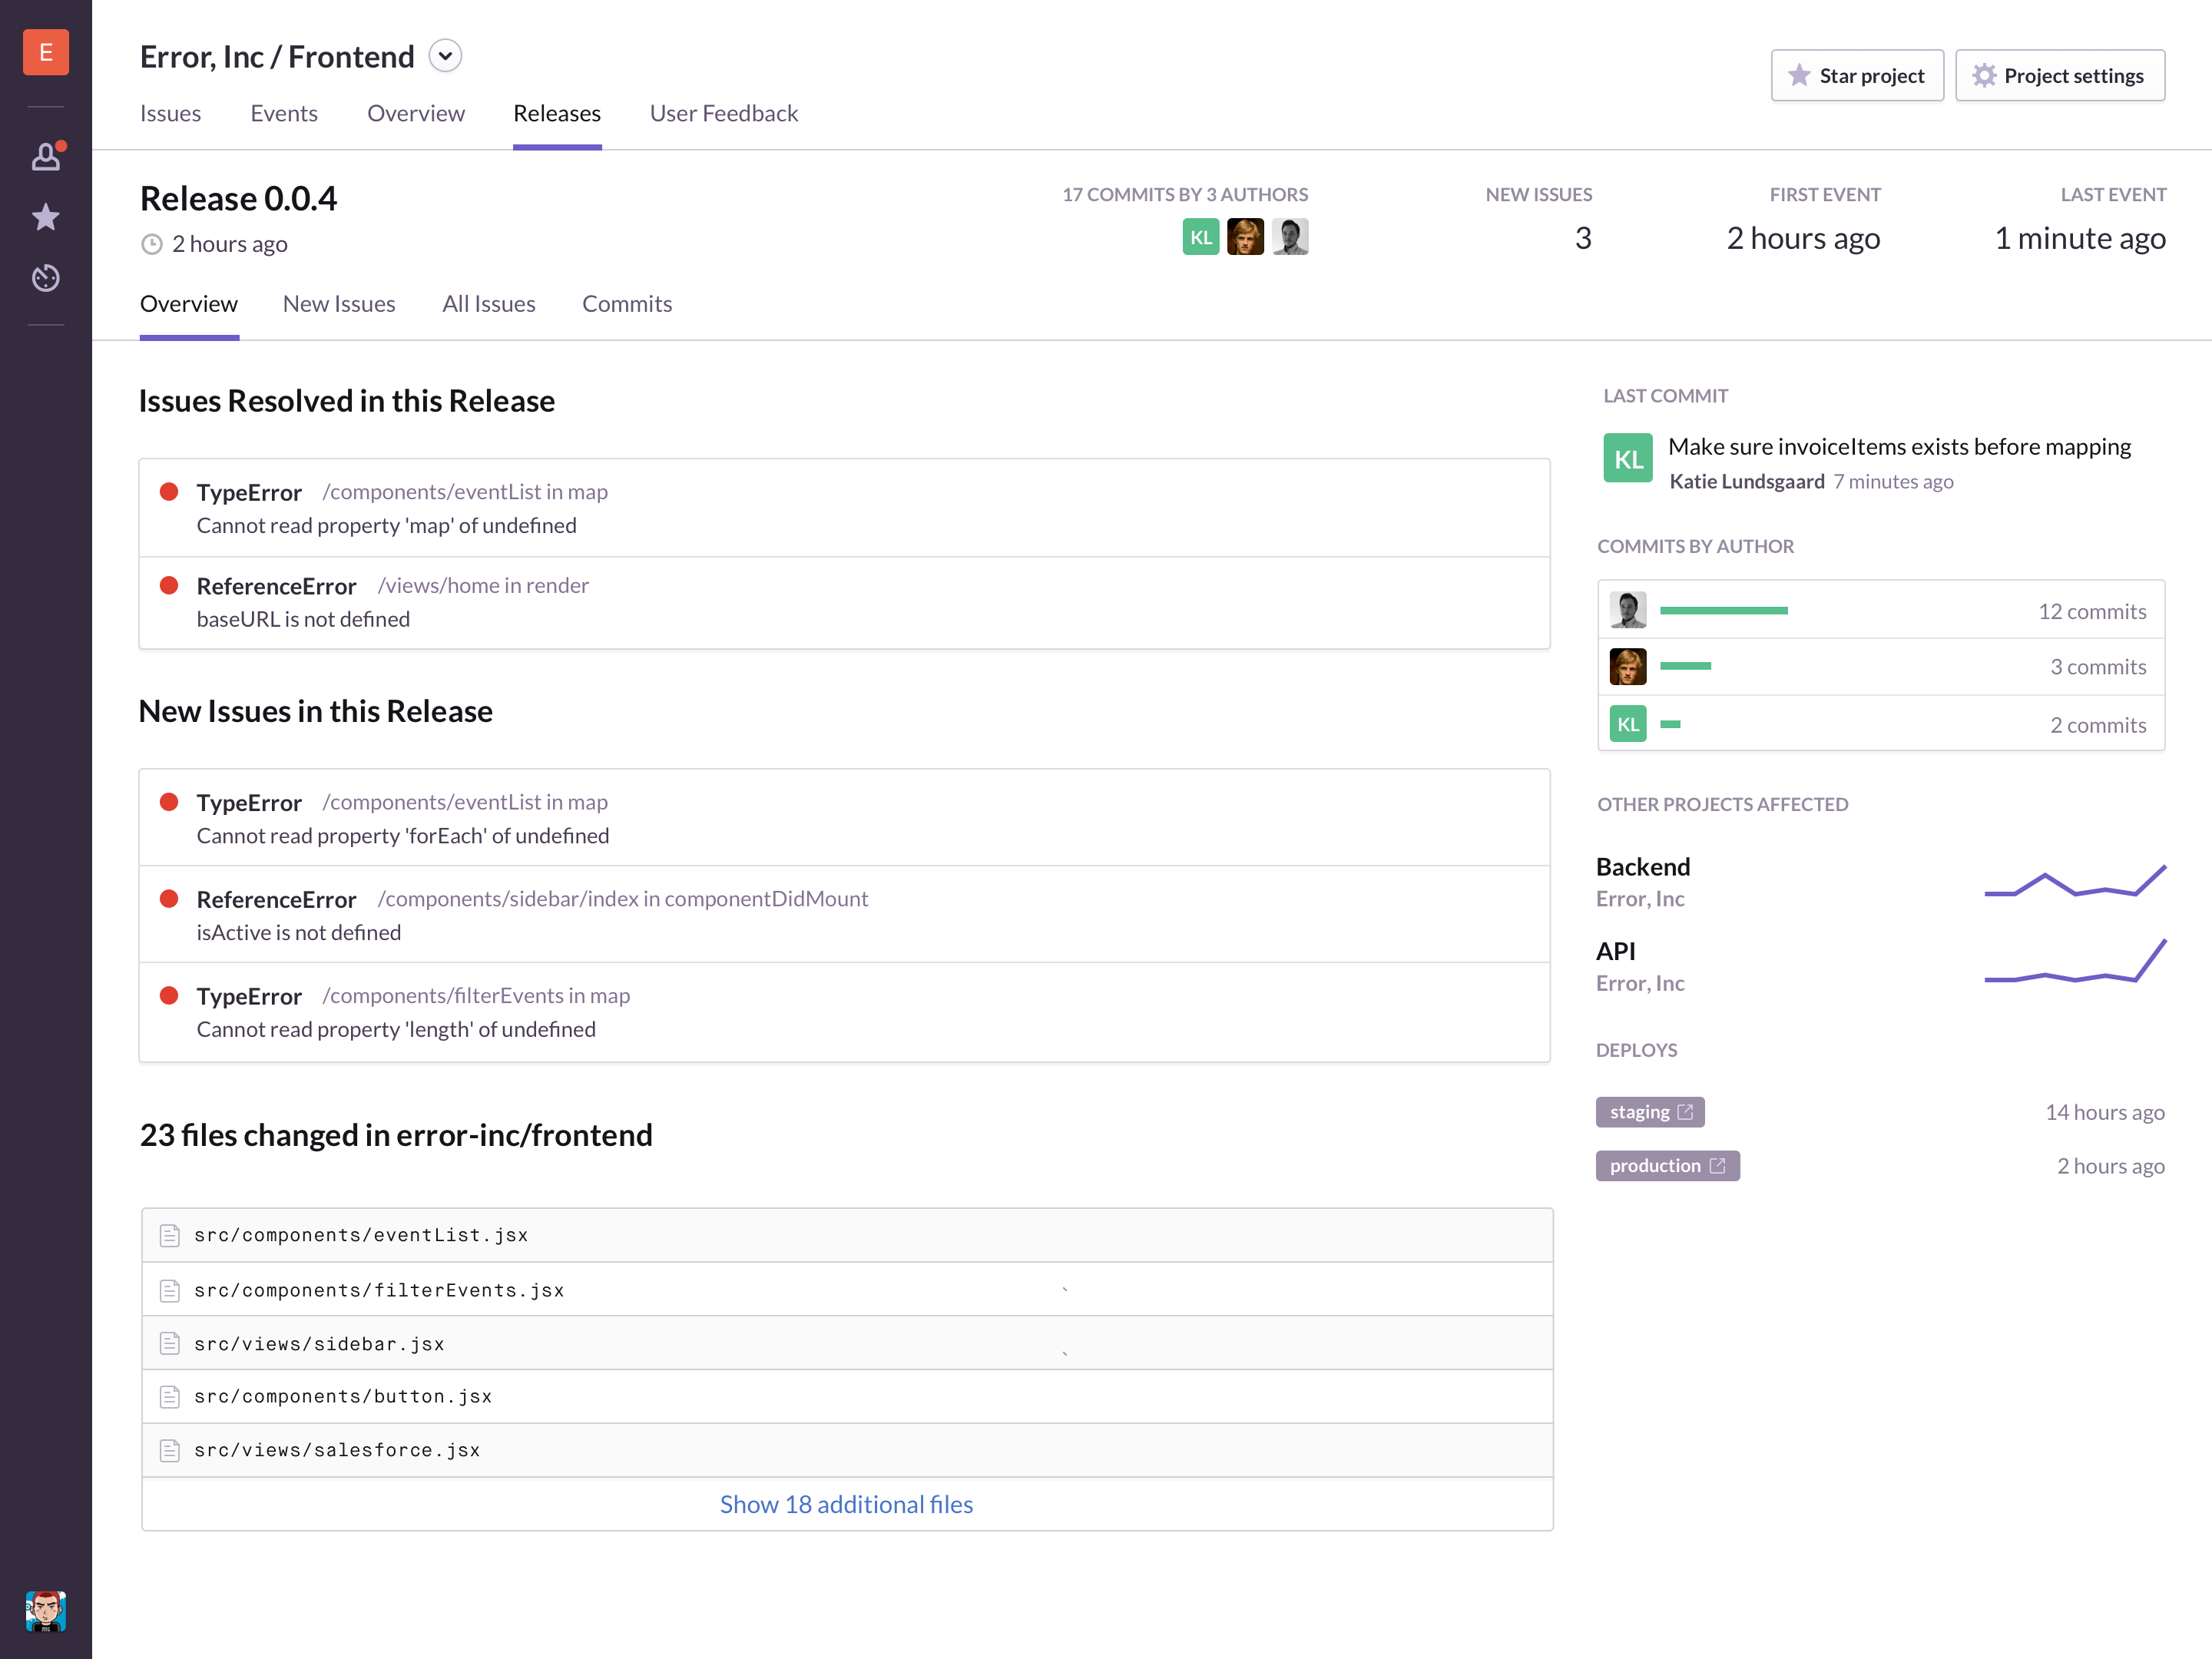 Real-time updates and notifications so you can react quickly when the unexpected happens during a deploy.